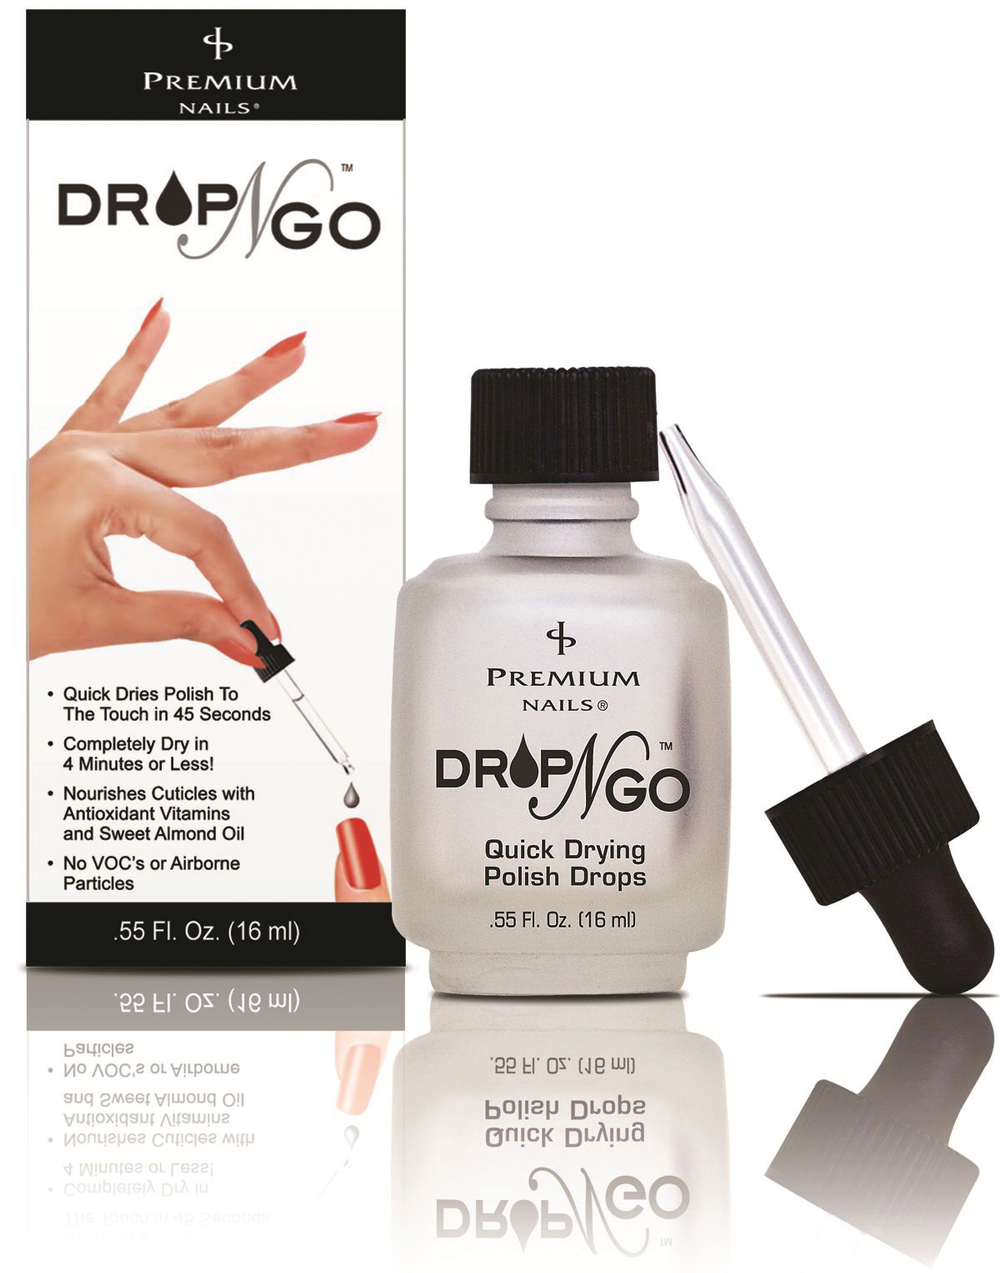 """<p>Drop-N-Go by <a href=""""http://www.premiumnails.com/"""">Premium Nails</a> quickly dries polish to the touch in 45 seconds, and more thoroughly in four minutes or less. Cuticles are nourished with antioxidants, vitamins, and sweet almond oil. The product releases zero VOCs or airborne particles.</p>"""